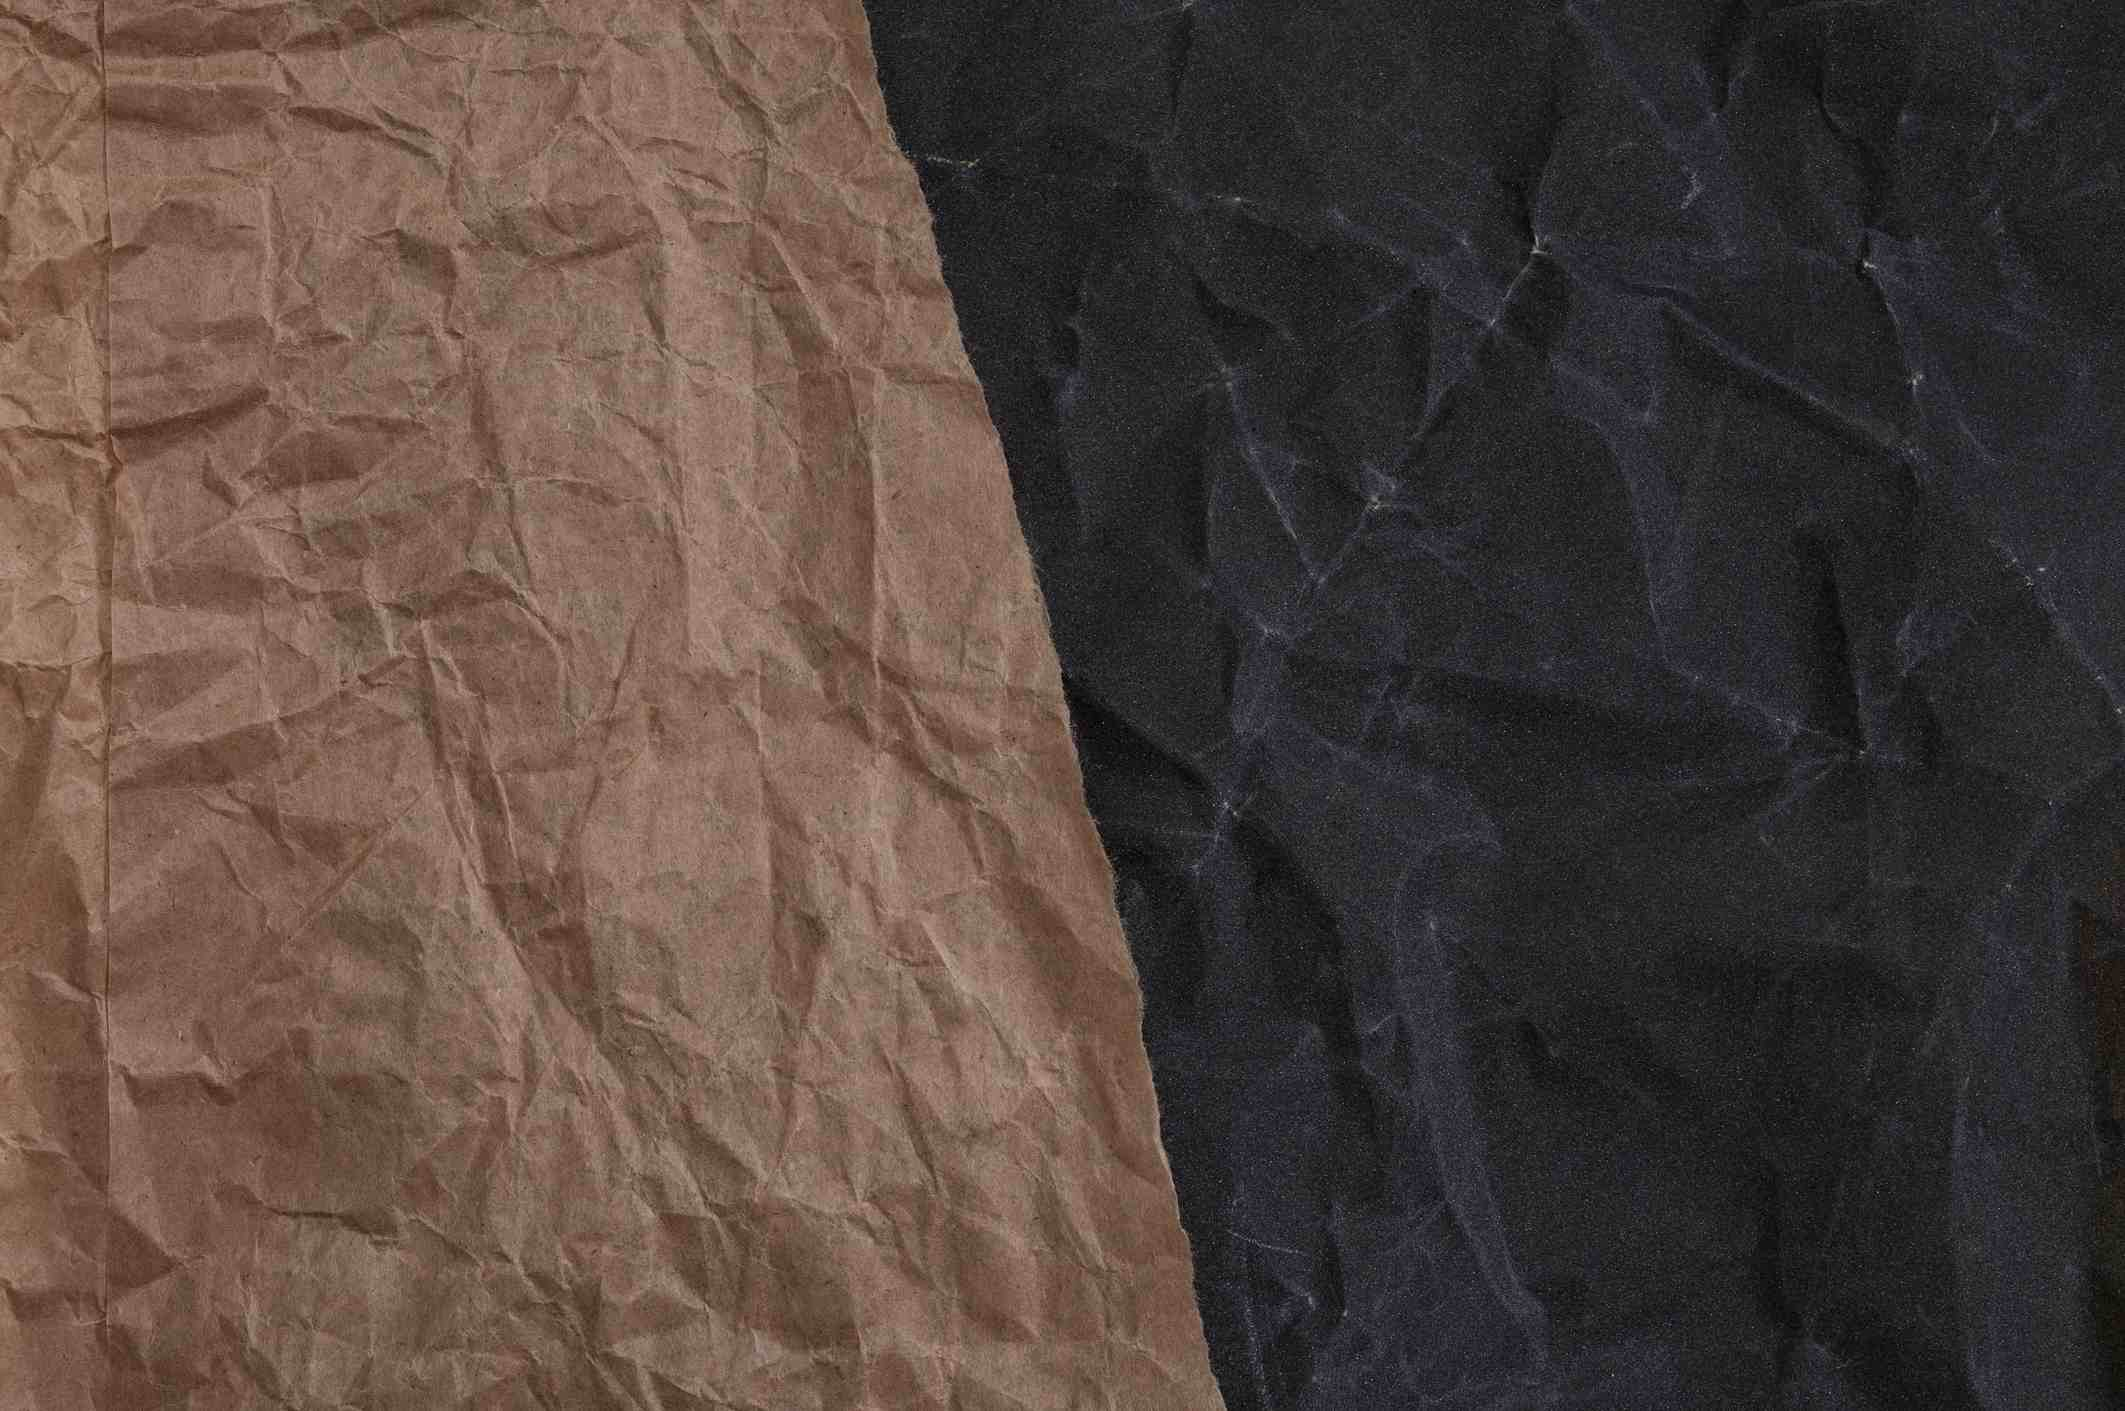 Two different types of used sandpaper